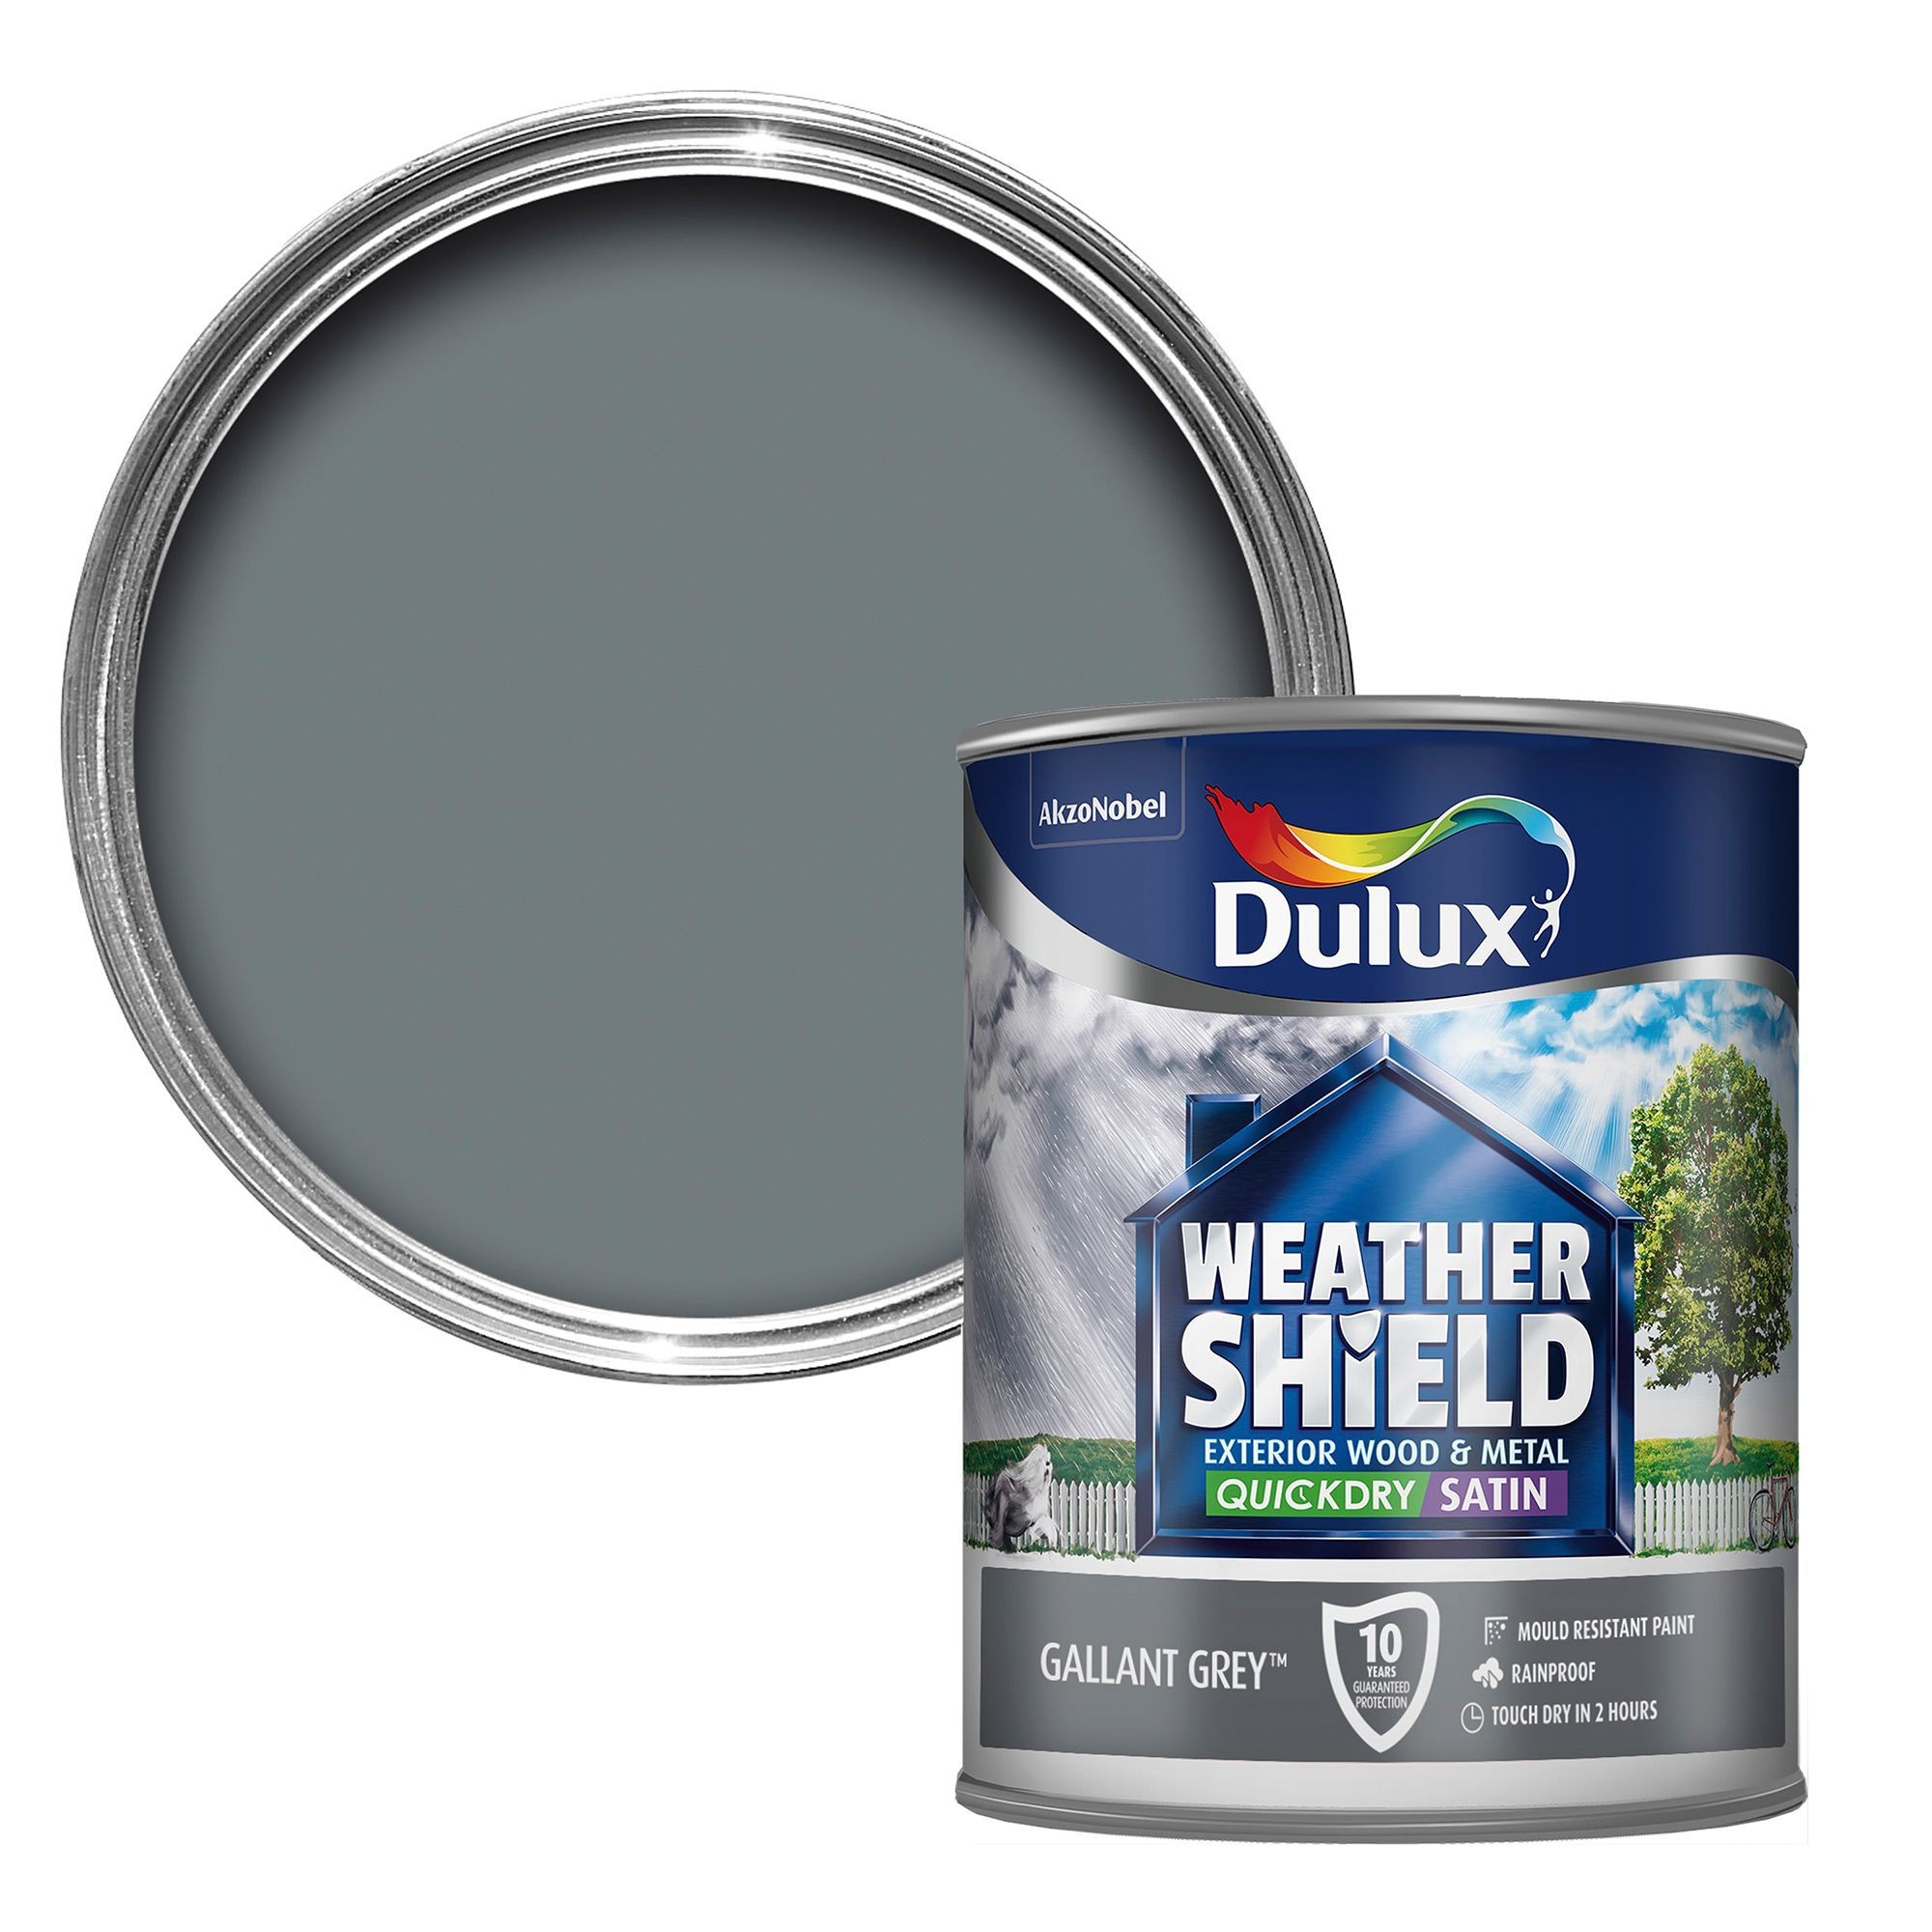 Dulux Weathershield Exterior Gallant Grey Satin Wood & Metal Paint 750ml